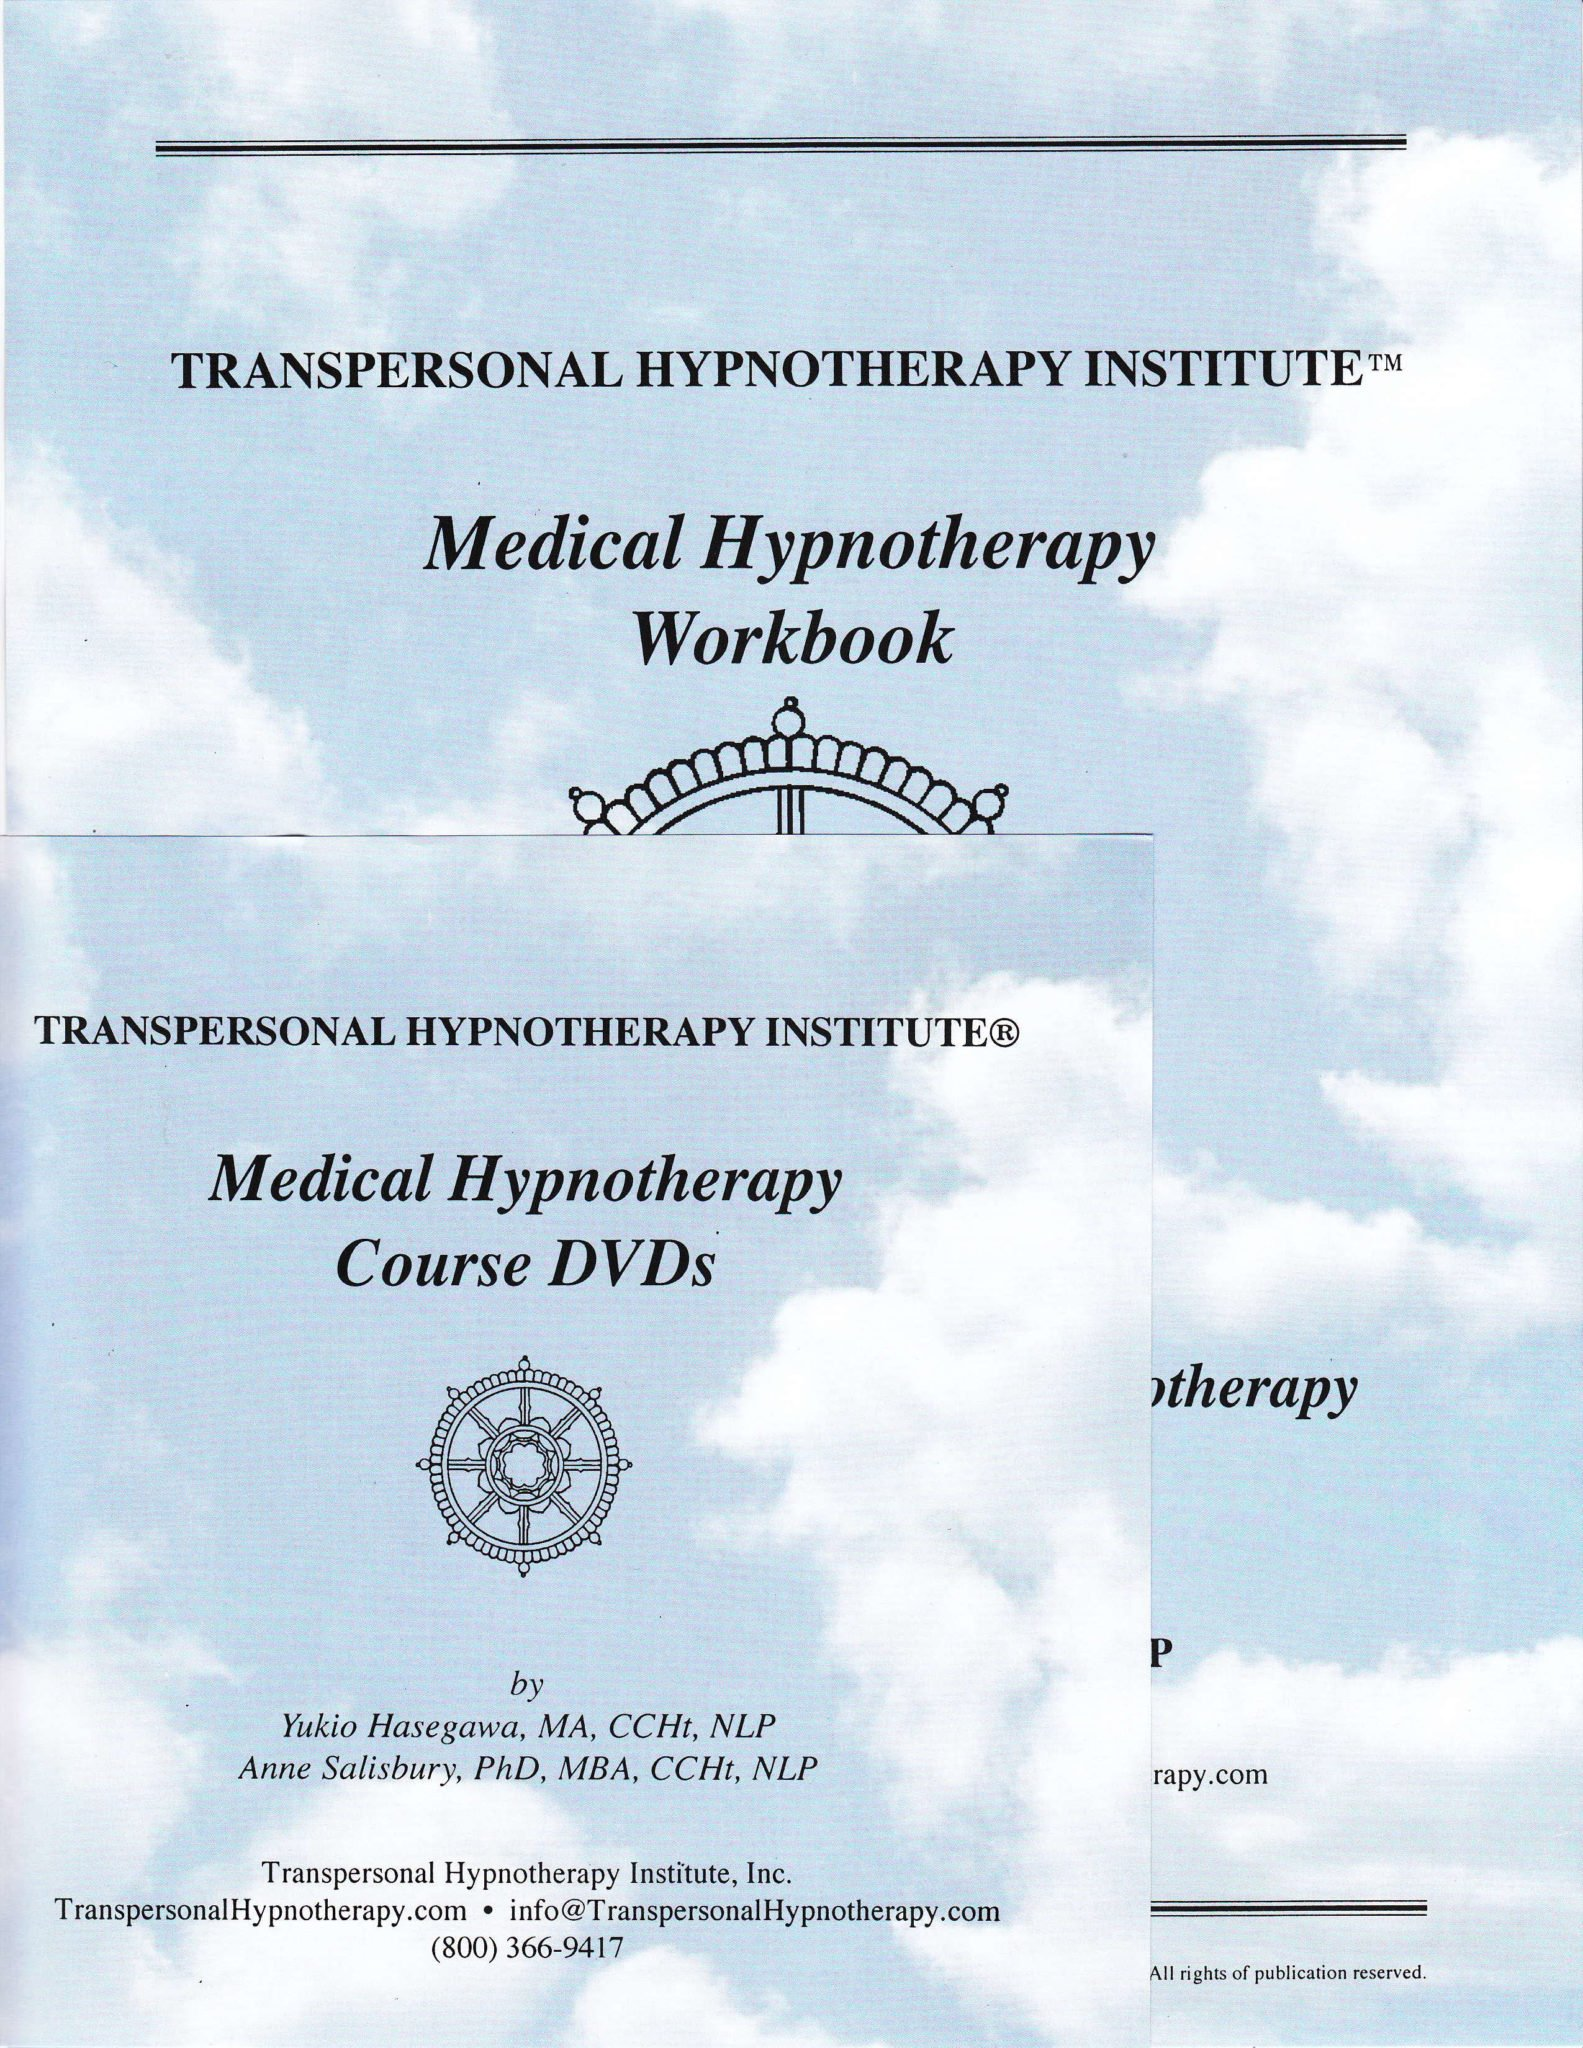 Medical Hypnotherapy Course